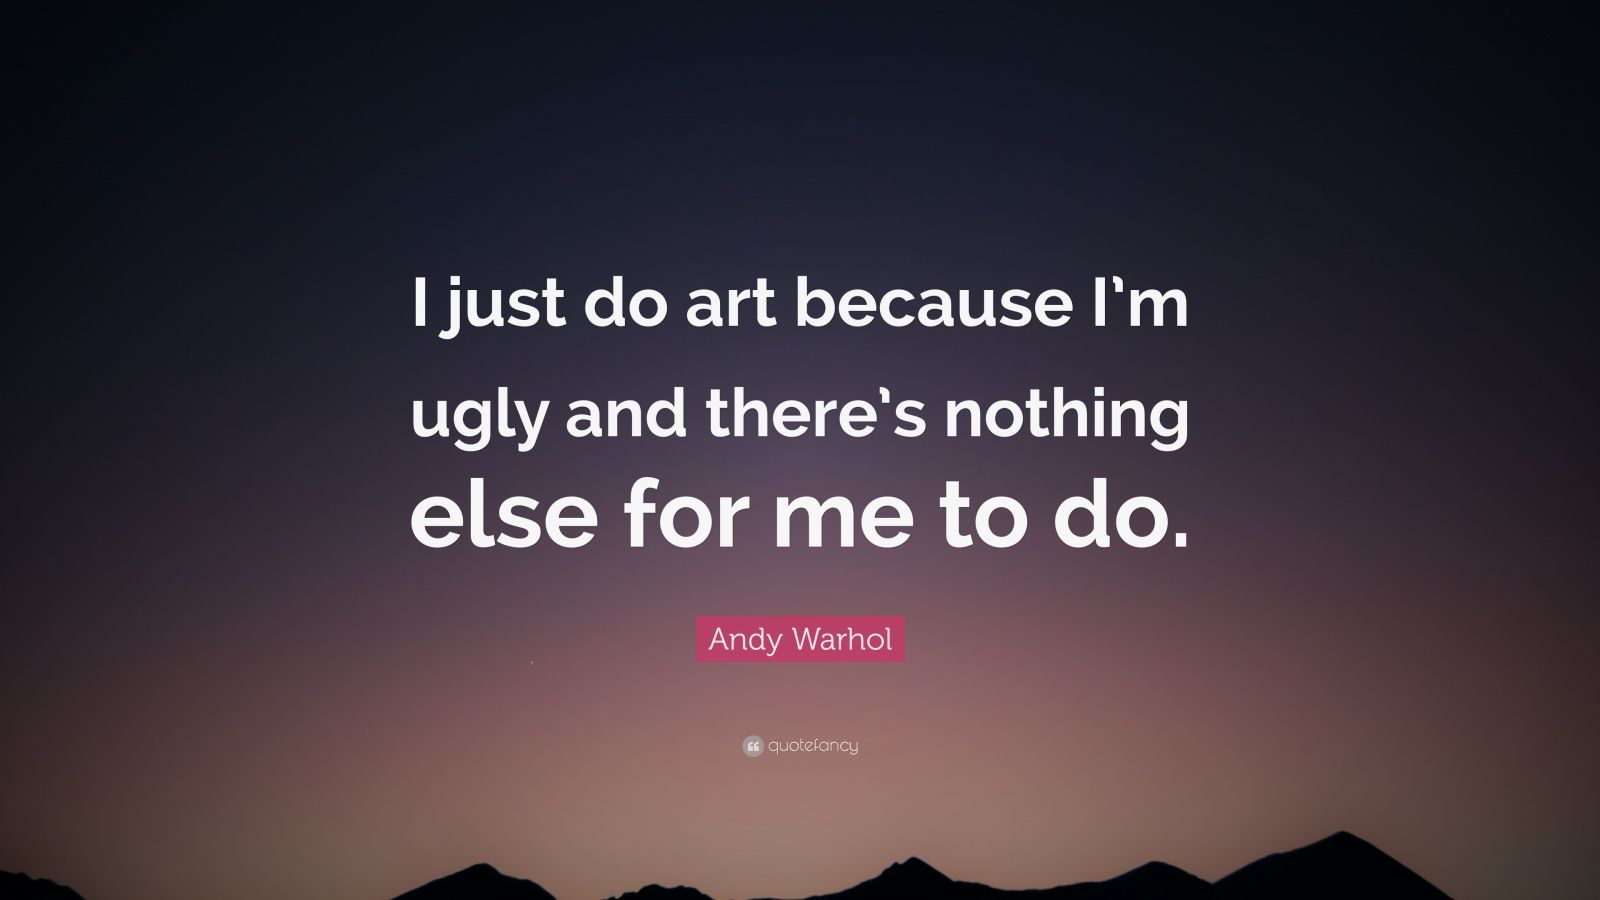 Andy Warhol Quotes Alluring Andy Warhol Quotes 100 Wallpapers  Quotefancy